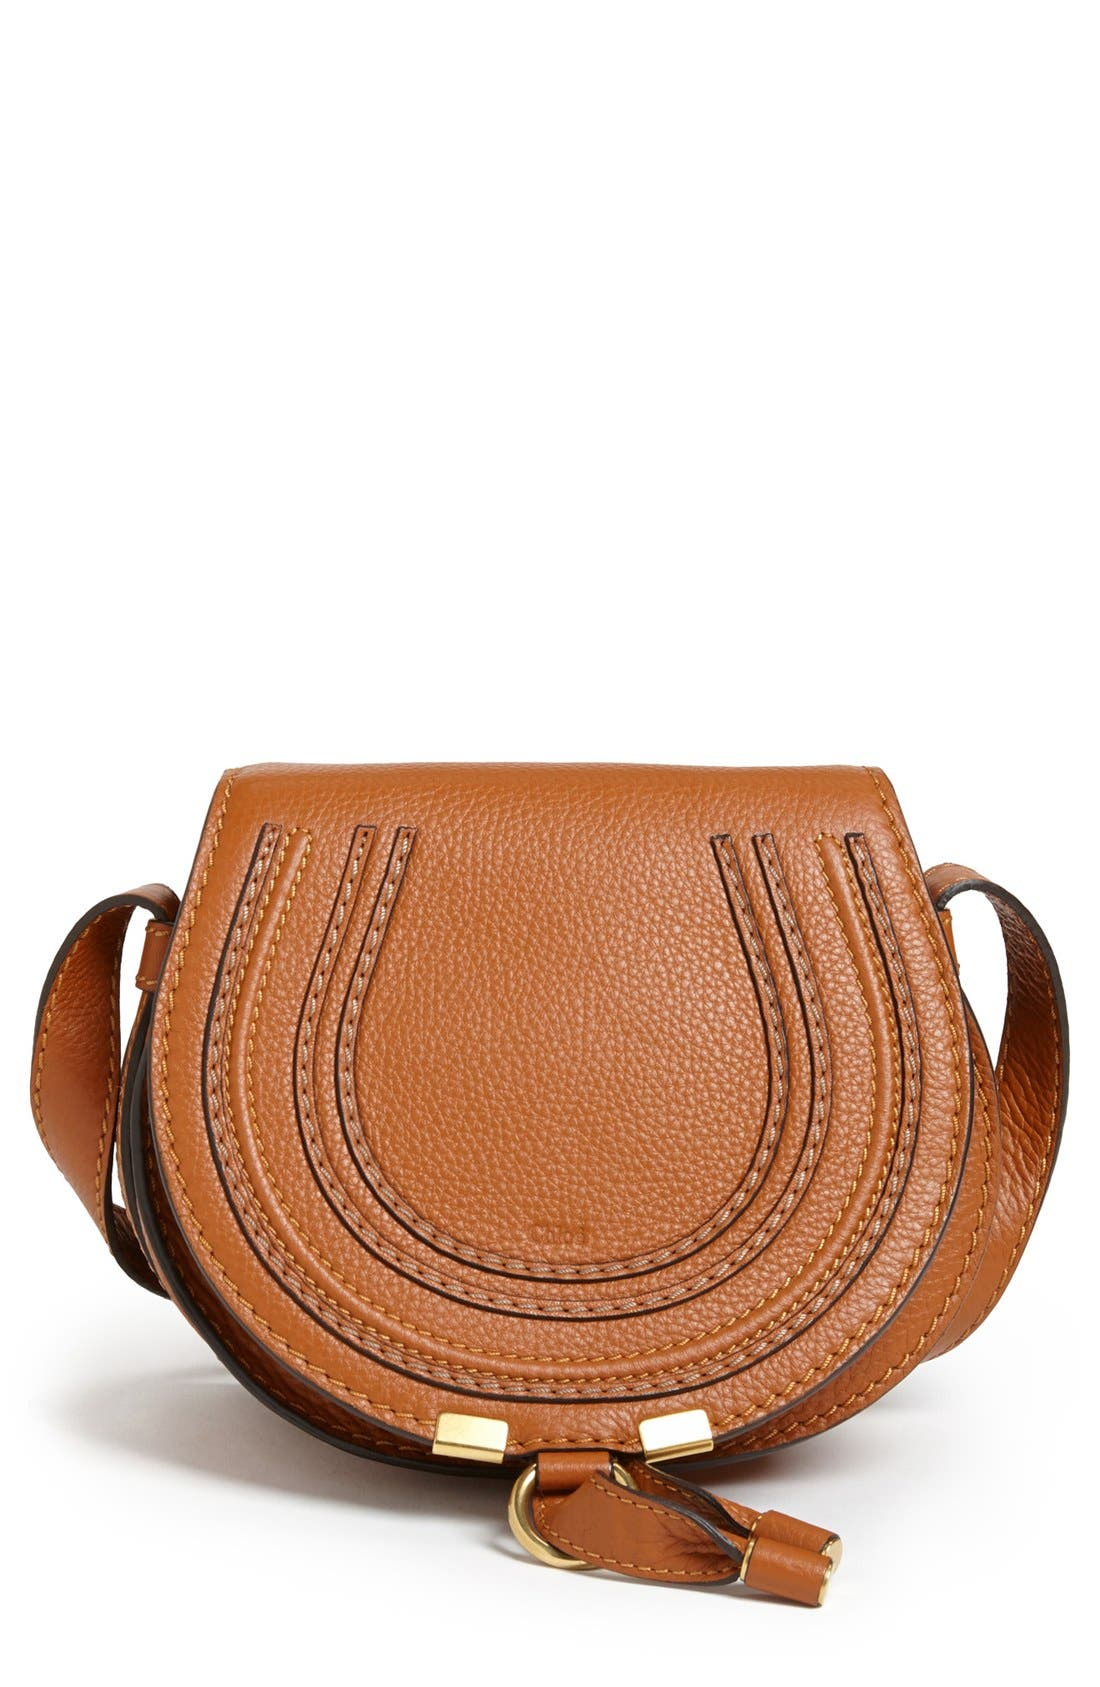 Main Image - Chloé 'Mini Marcie' Leather Crossbody Bag